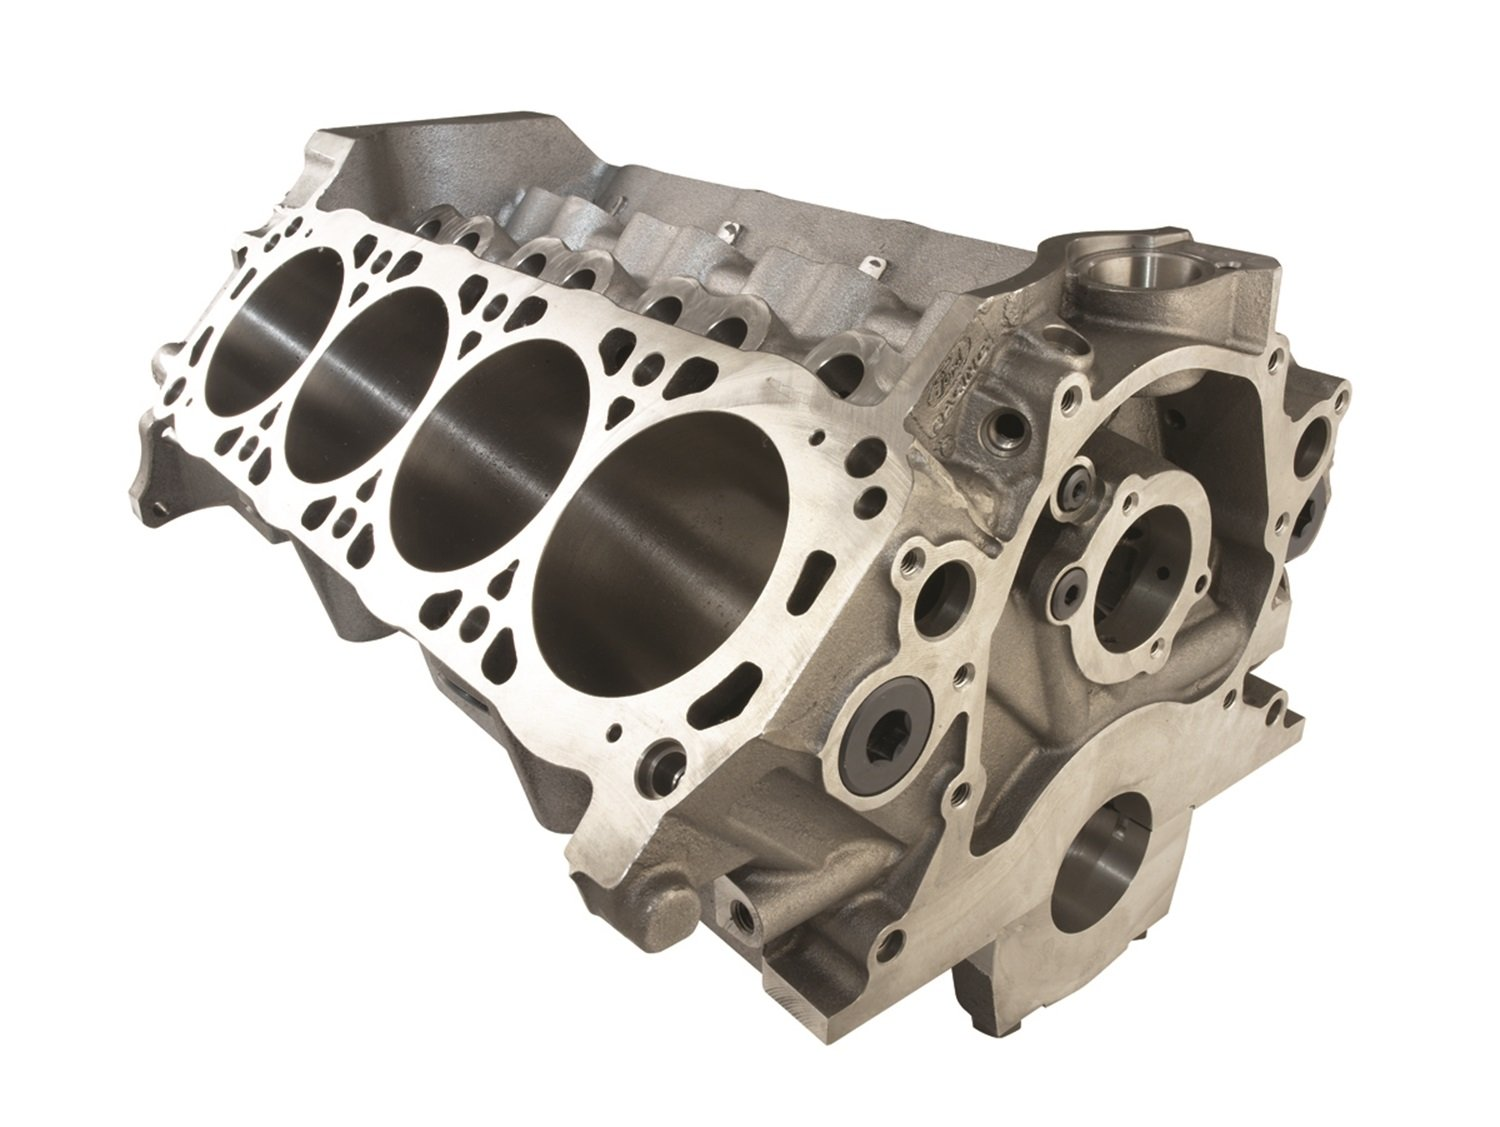 Ford Racing M-6010-BOSS302 Cylinder Block for Ford Mustang Boss 302